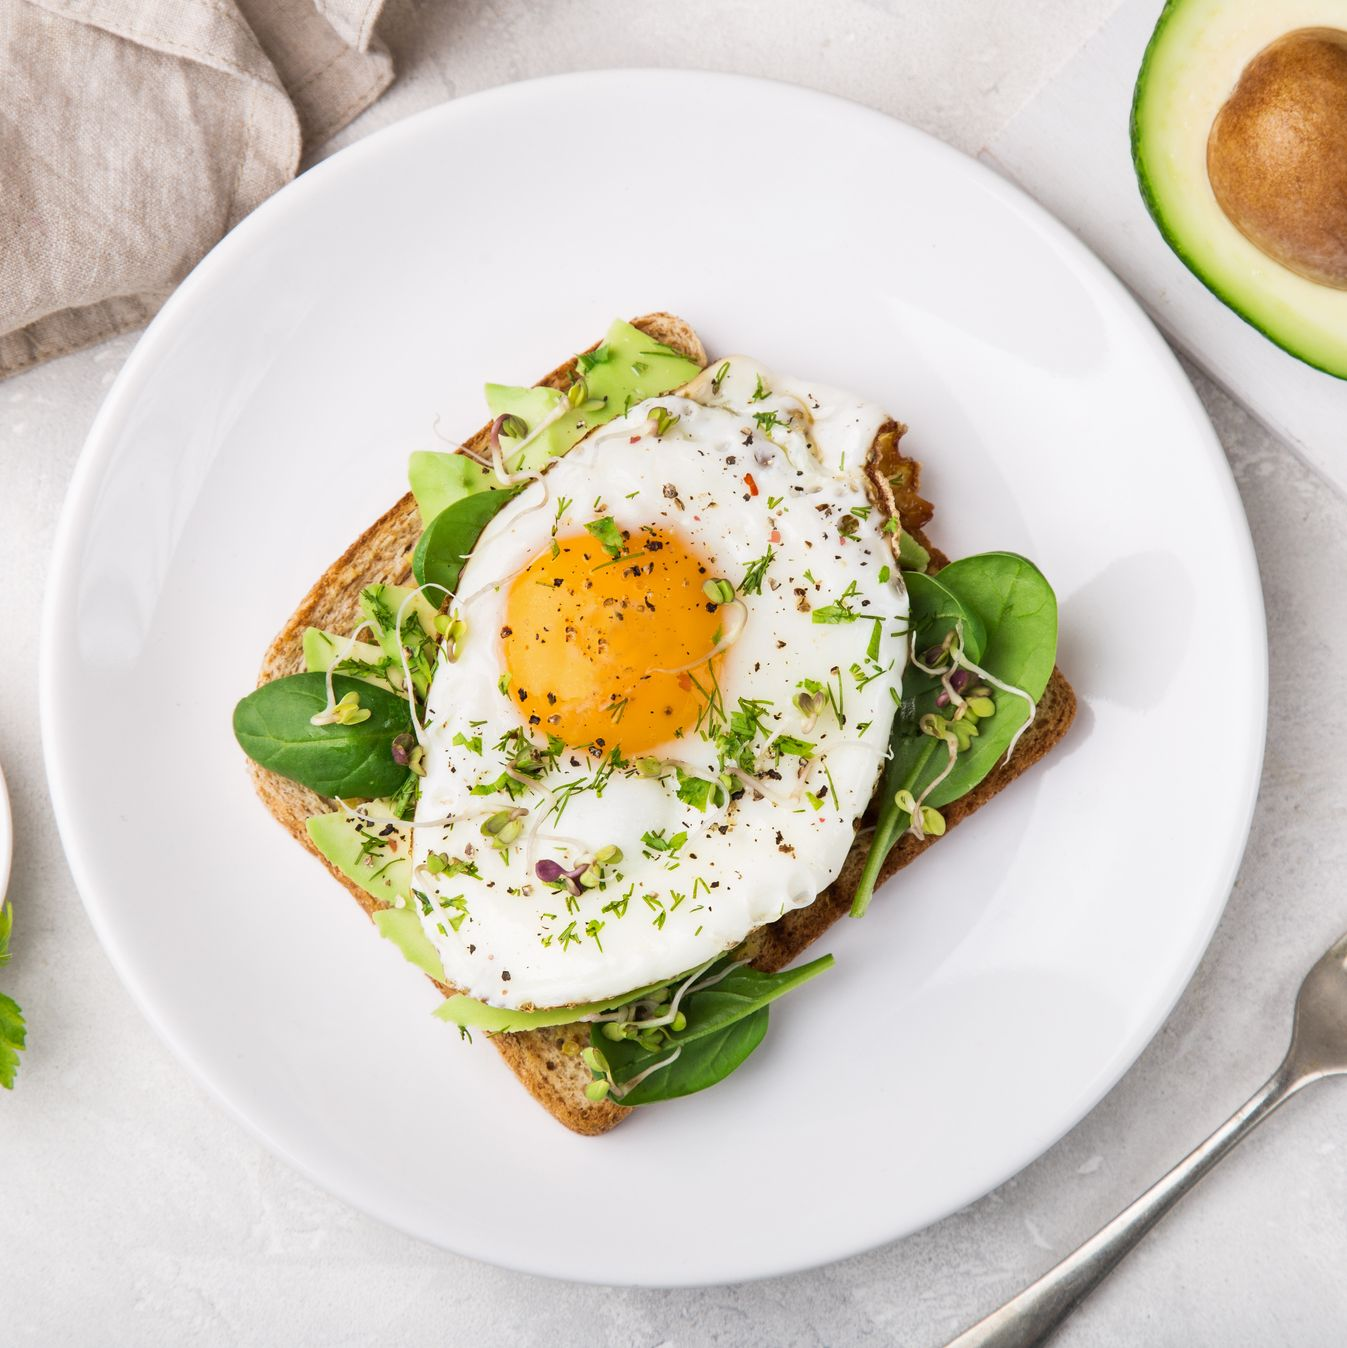 toast with avocado, spinach and fried egg